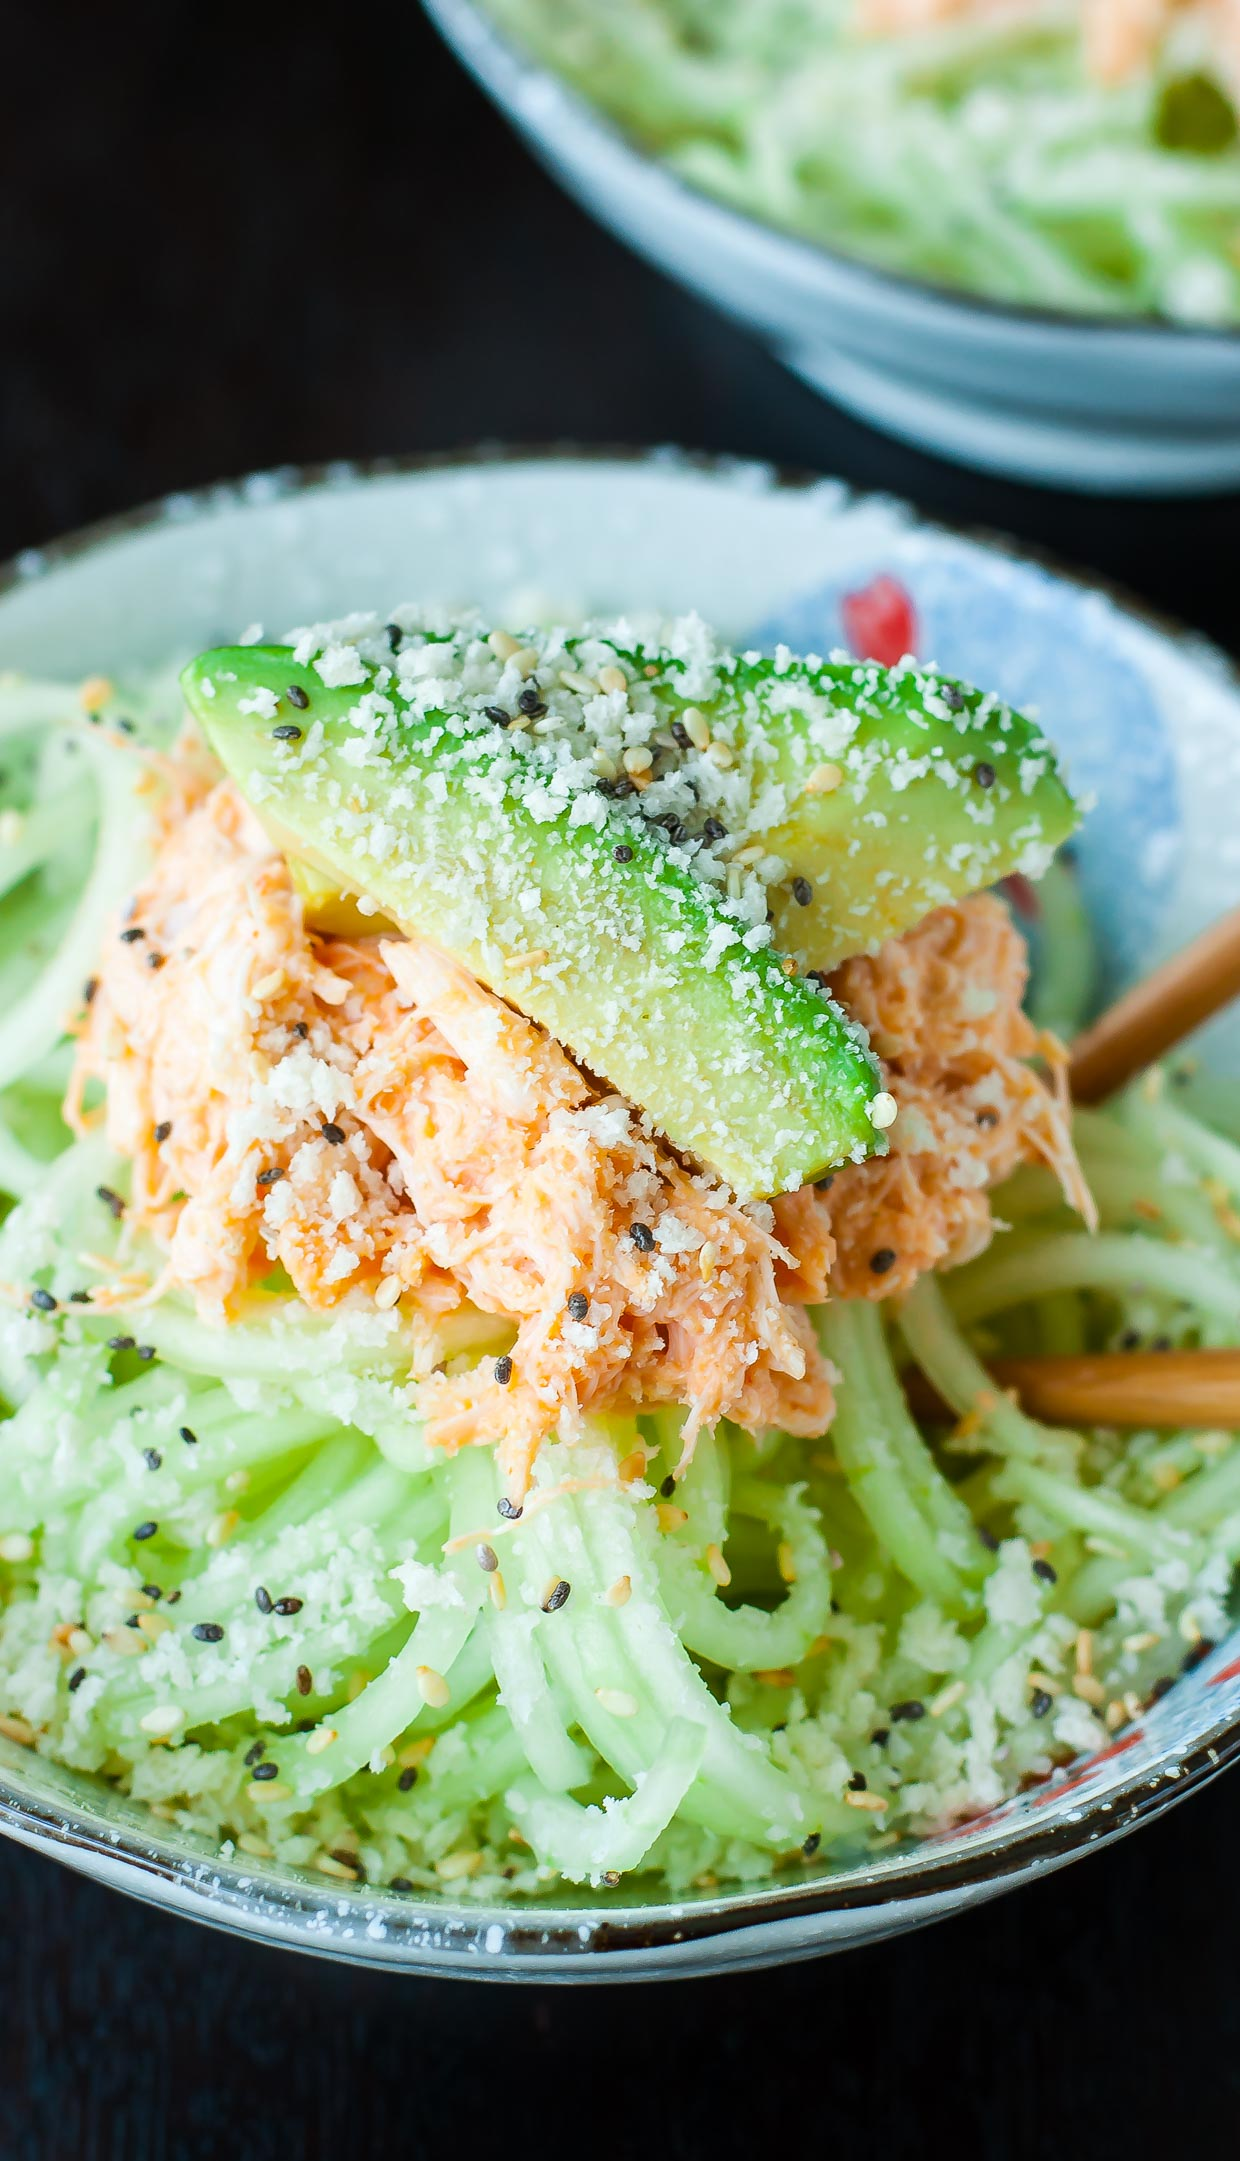 This Spicy Sriracha Crab and Cucumber Salad is refreshing and flavorful! This Japanese-inspired kani salad is my absolute favorite sushi restaurant appetizer. #crab #seafood #pescatarian #healthy #spiralized #spiralizer #cucumber #avocado #sriracha #restaruantcopycat